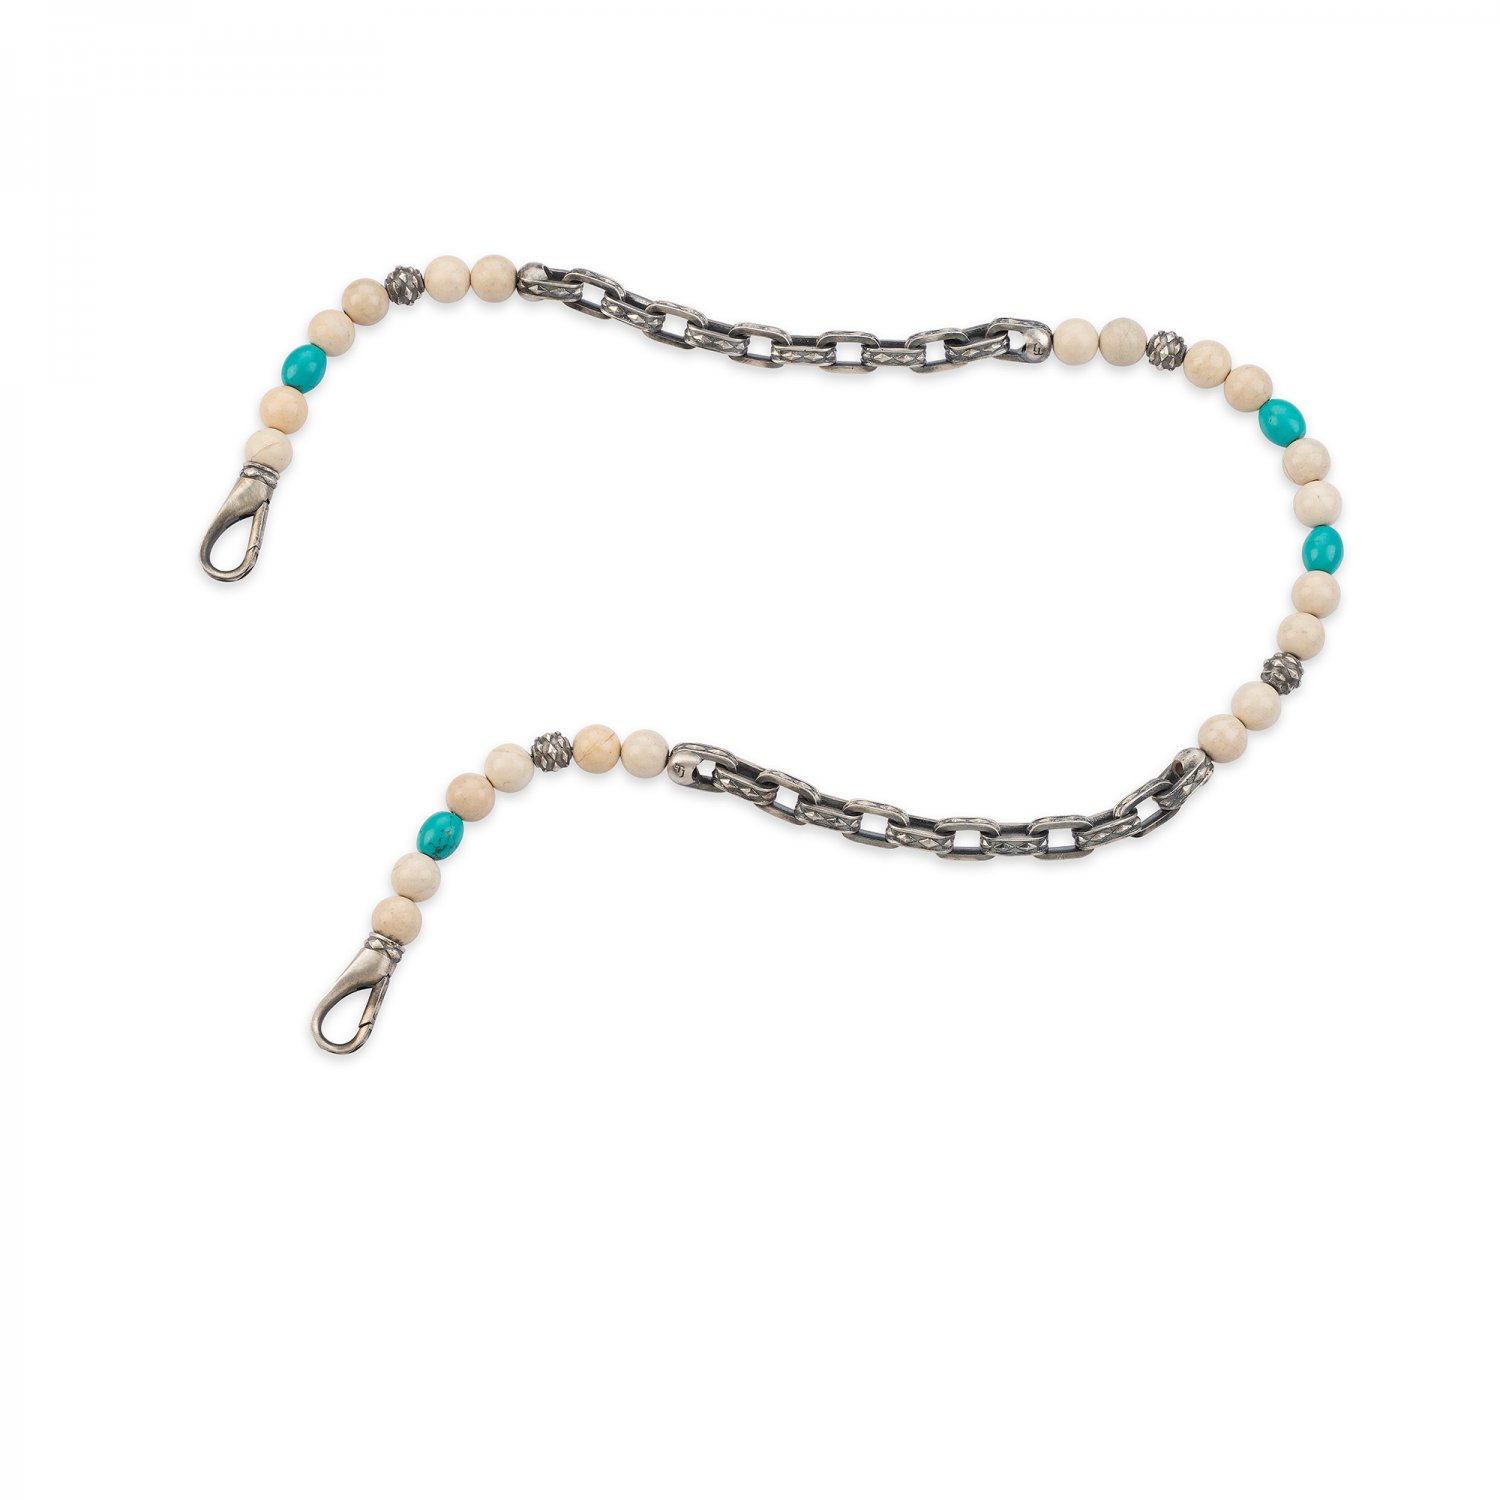 Oxidised Silver Cubic Trouser Chain with River Stone & Turquoise Beads, 10.00mm